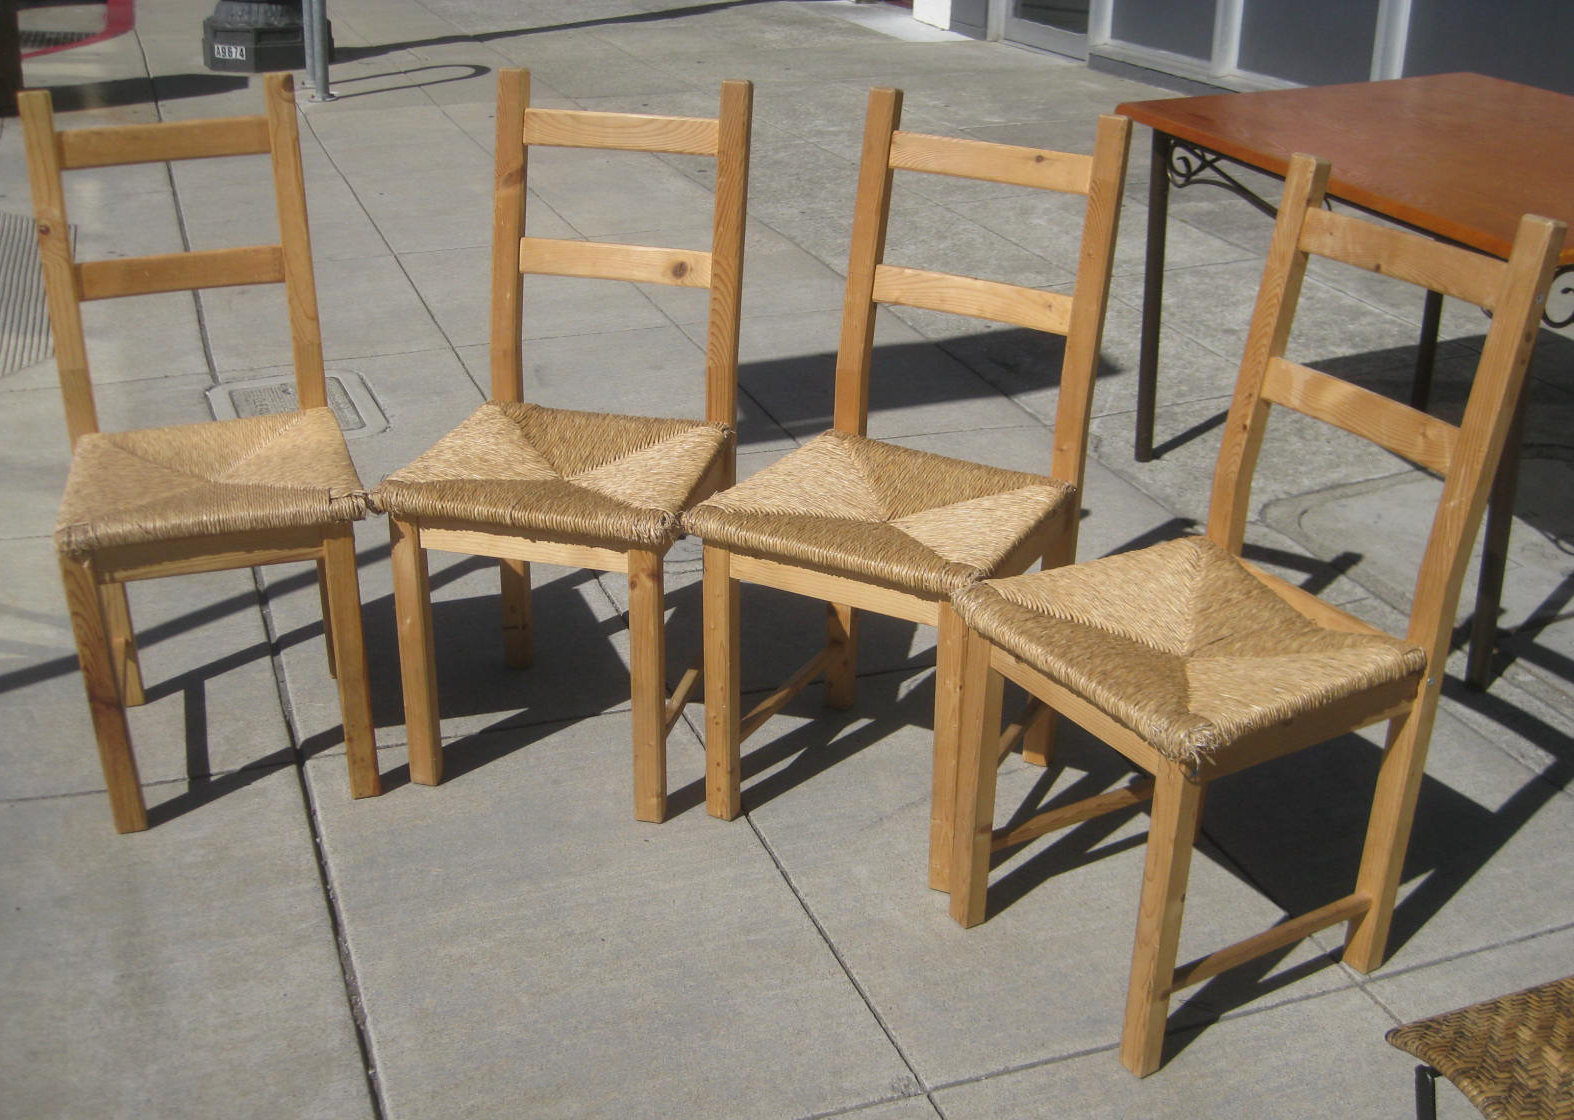 rush seat chairs 15 inch round chair cushions uhuru furniture collectibles sold 25 each